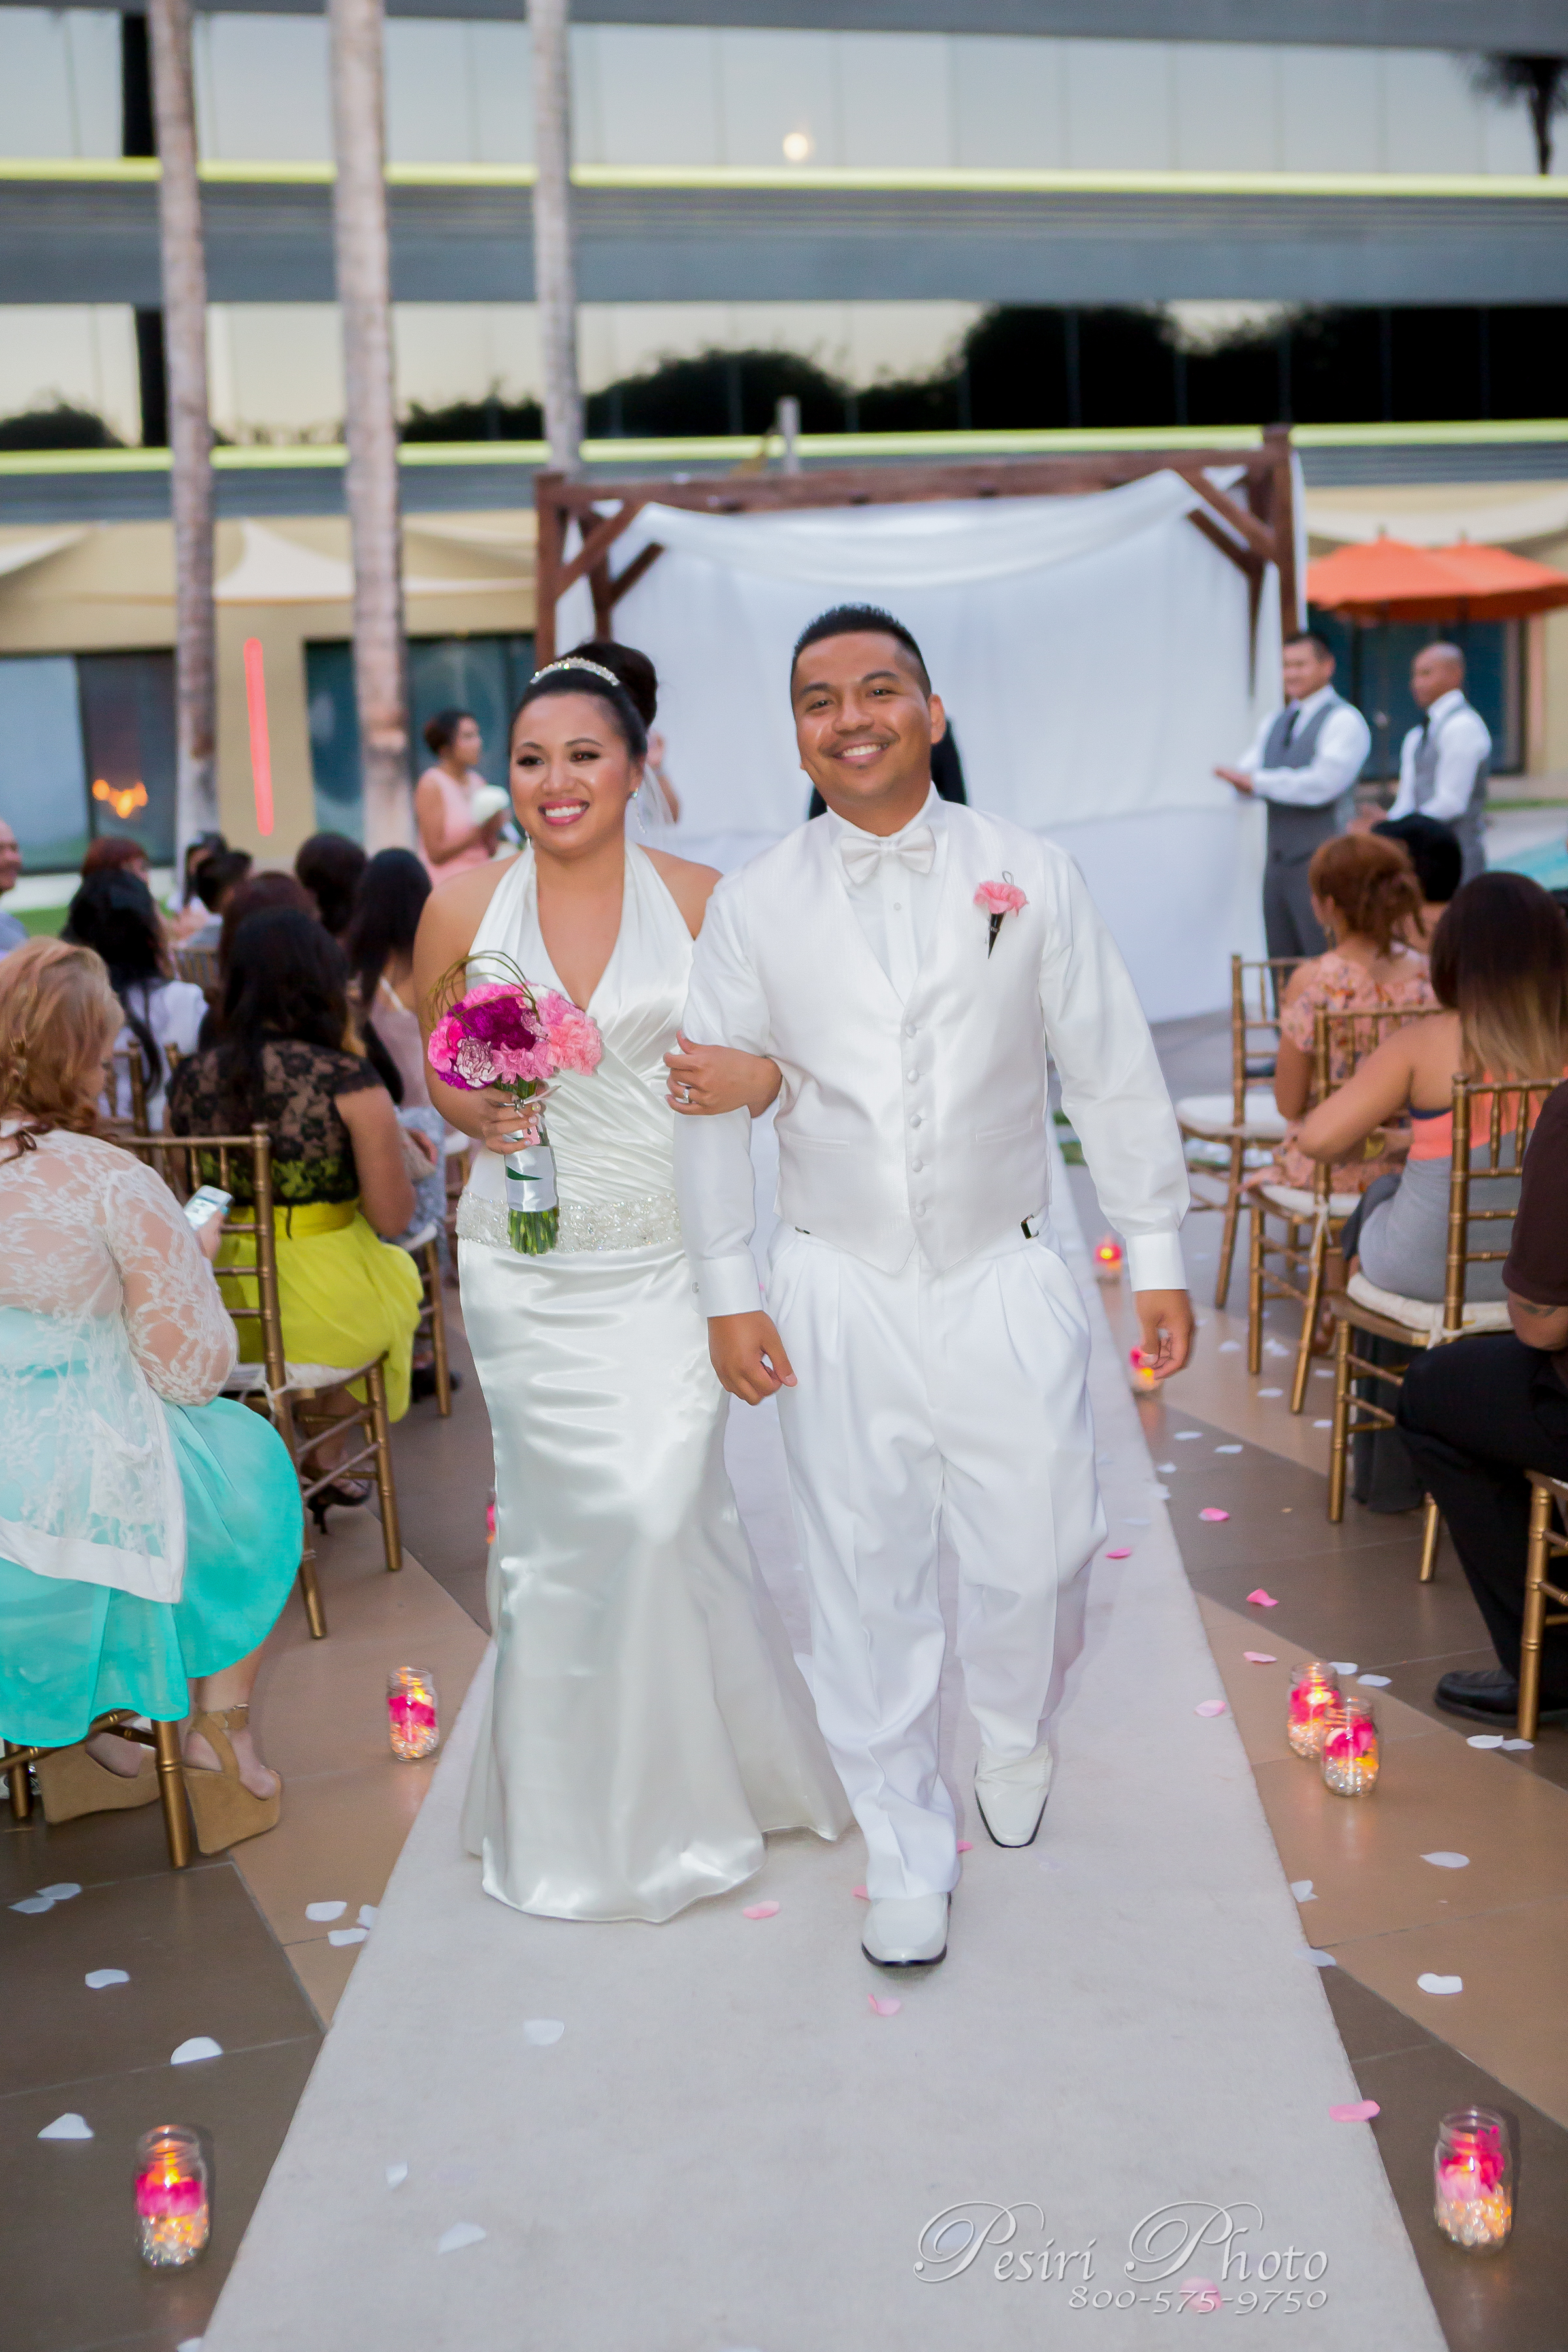 DoubleTree Monrovia wedding